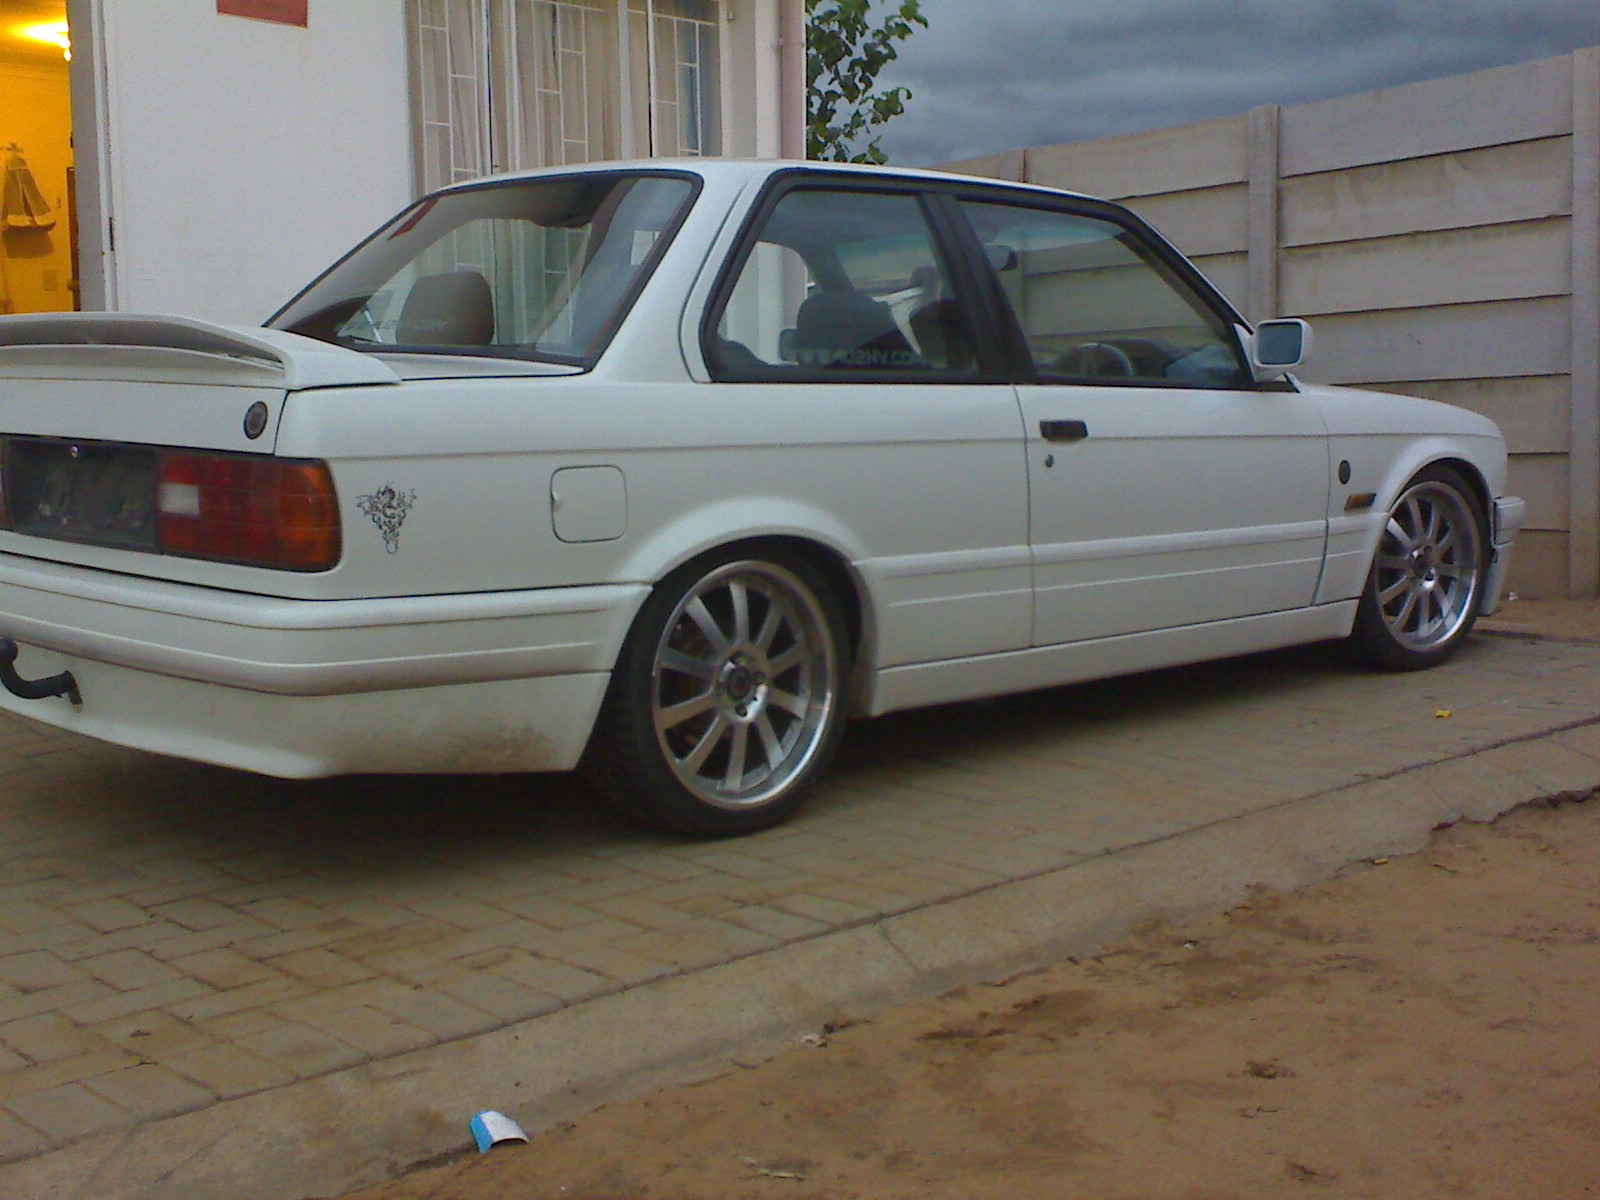 BMW 3 series 325is 1991 photo - 7